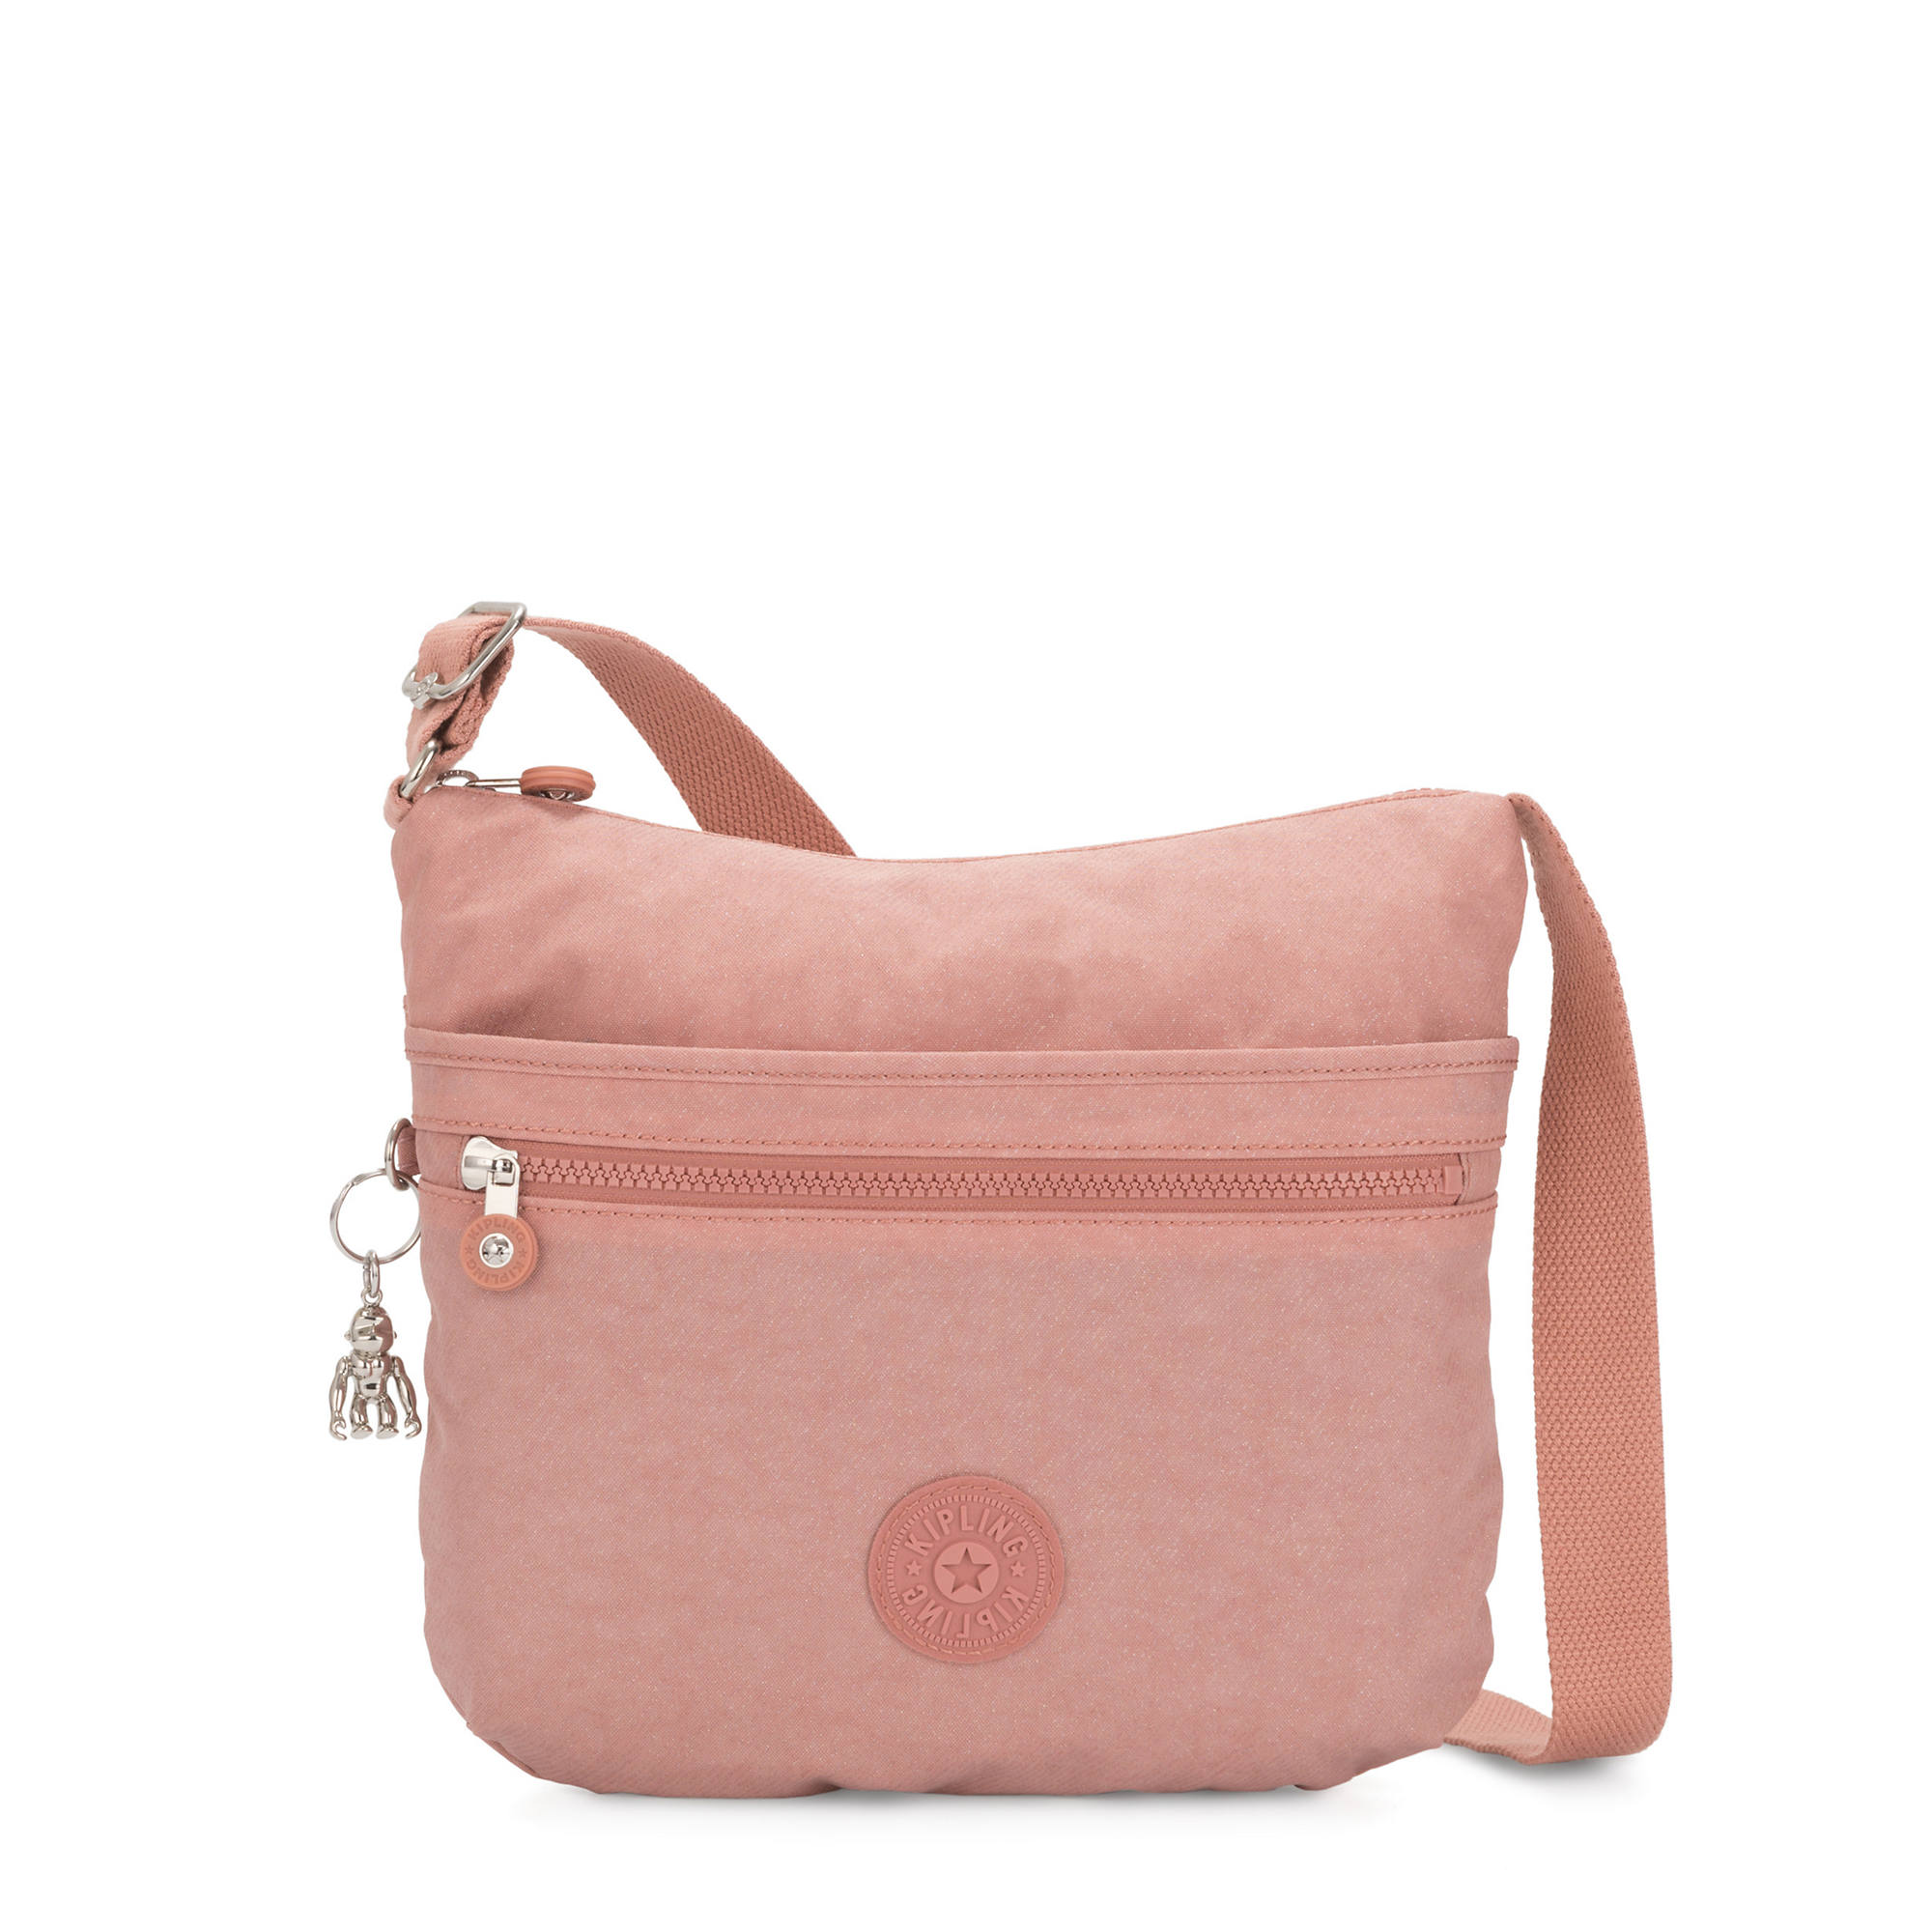 Arto Crossbody Bag,Glimmer Pink,large-zoomed